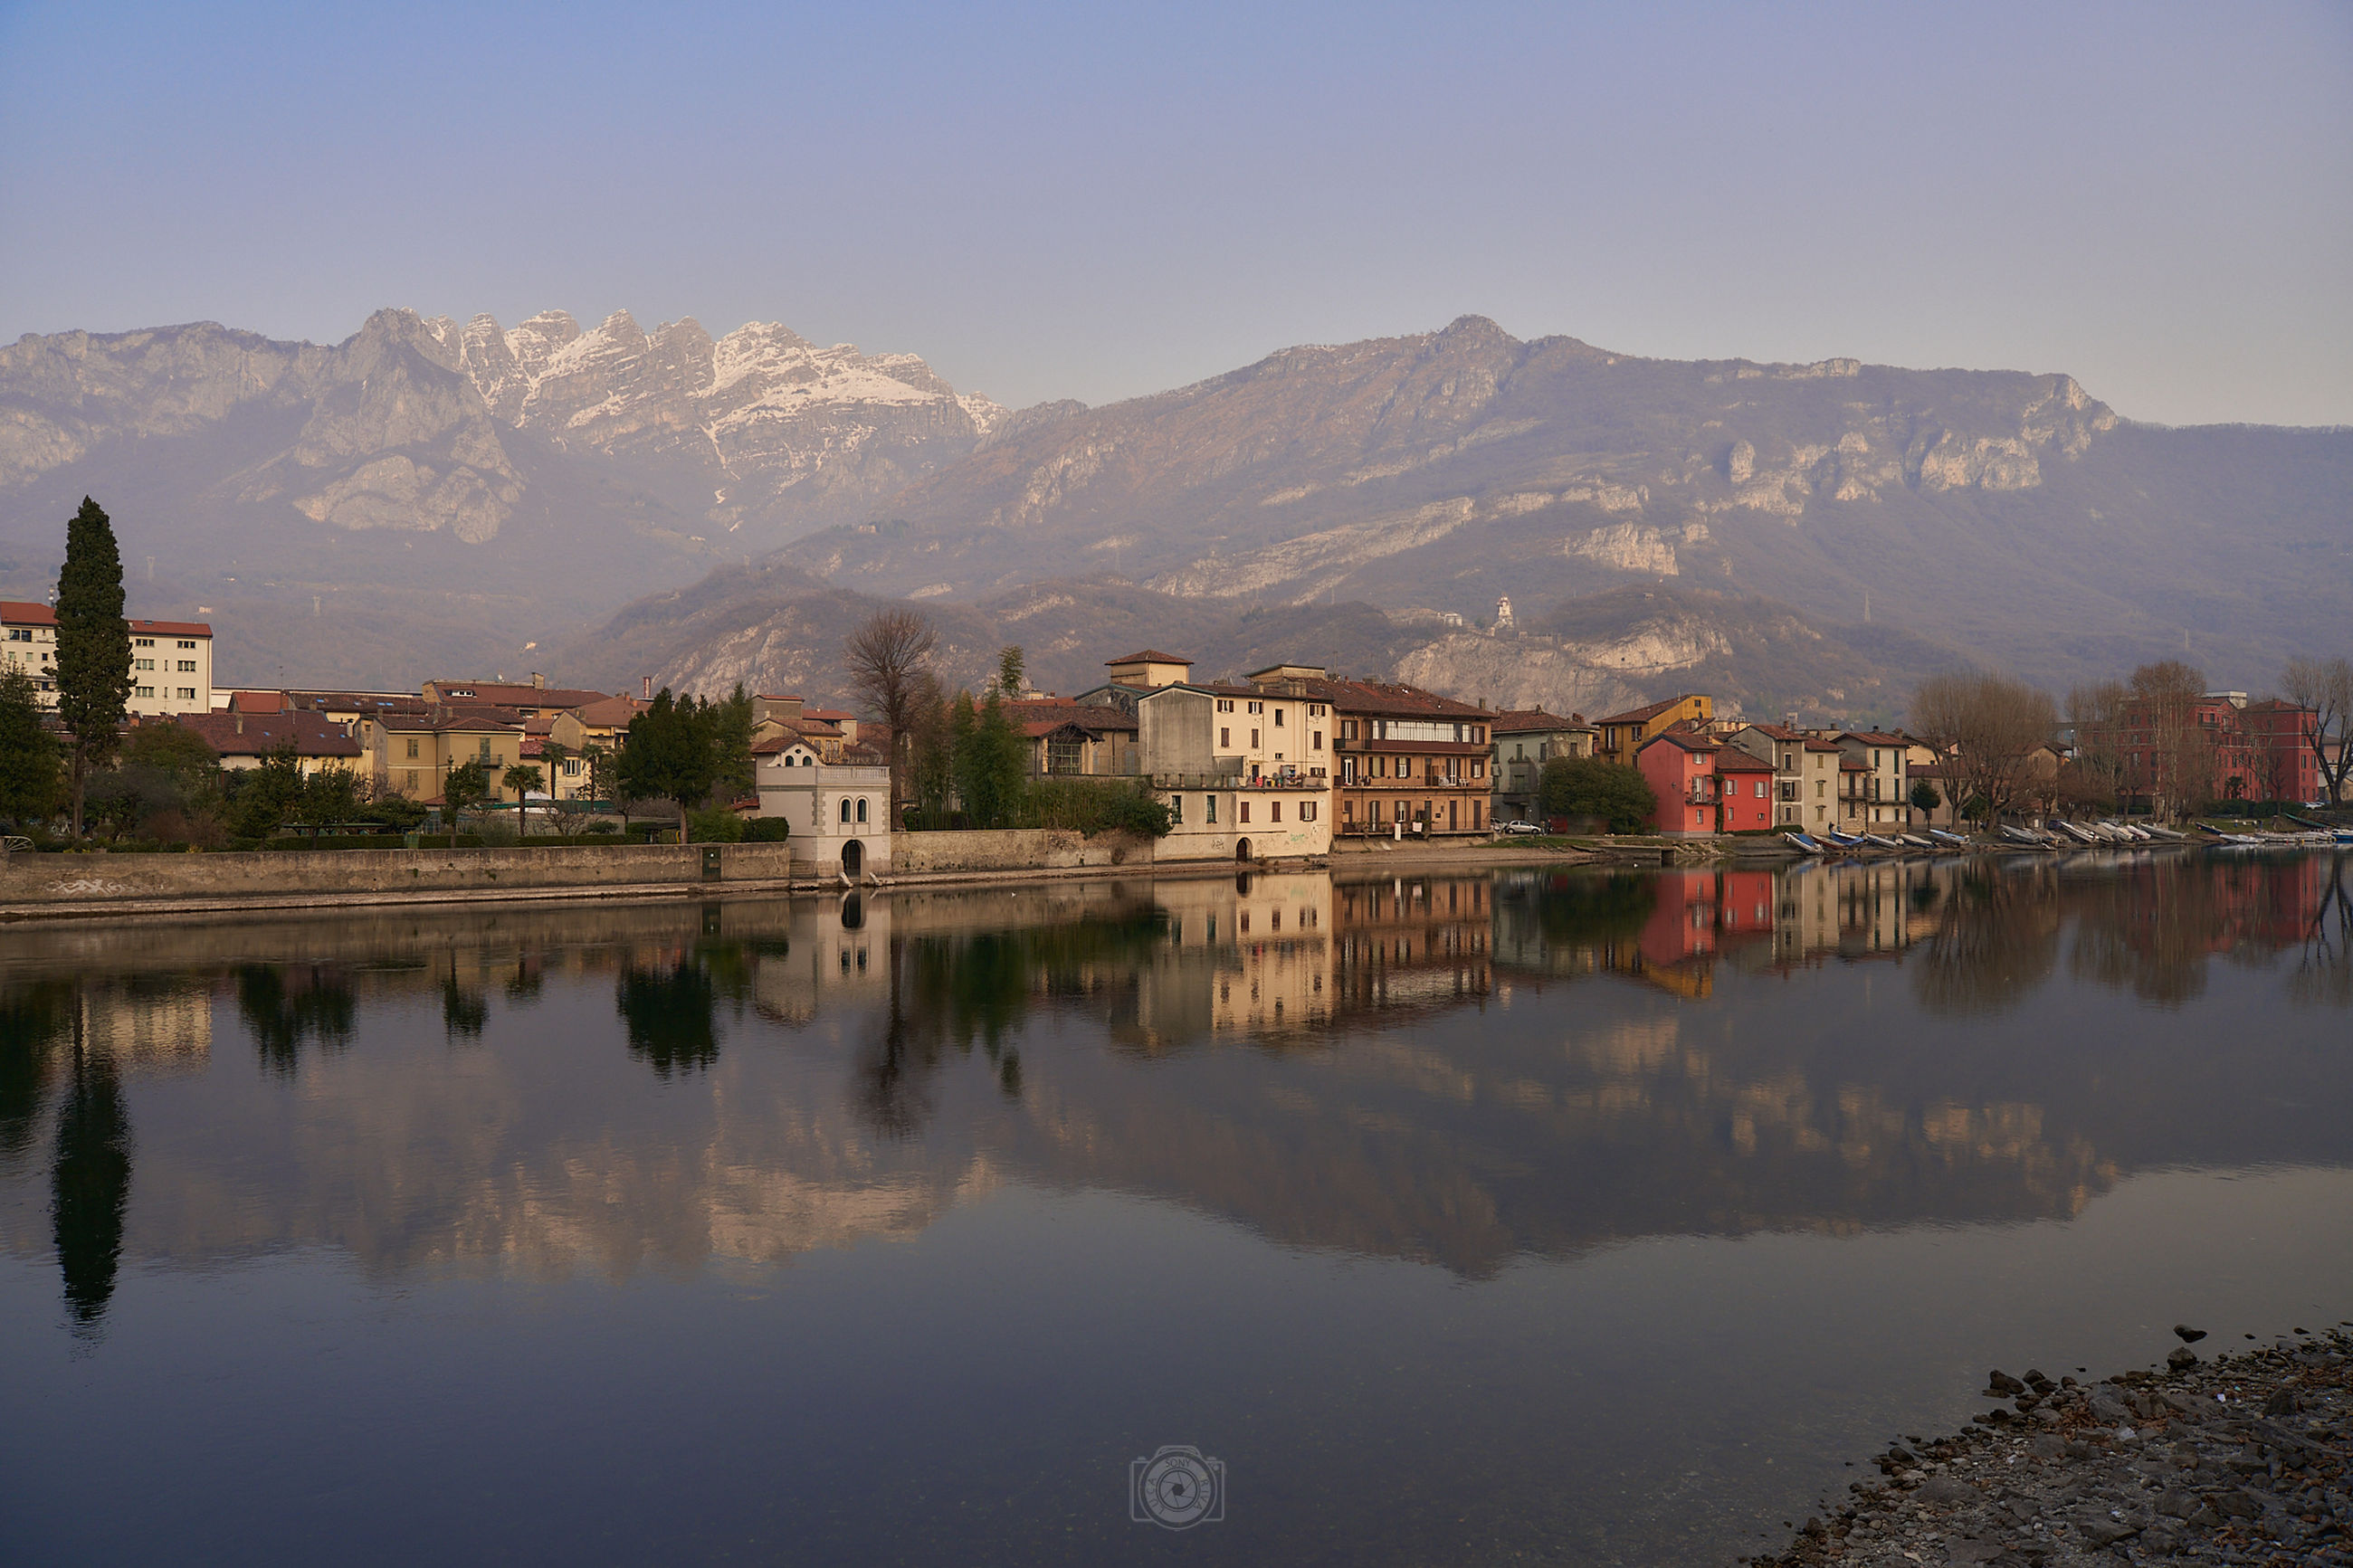 water, reflection, mountain, architecture, morning, building, sky, building exterior, built structure, lake, nature, mountain range, landscape, city, scenics - nature, travel destinations, house, environment, beauty in nature, dusk, travel, no people, religion, land, outdoors, tranquility, residential district, tourism, clear sky, history, tree, town, twilight, the past, blue